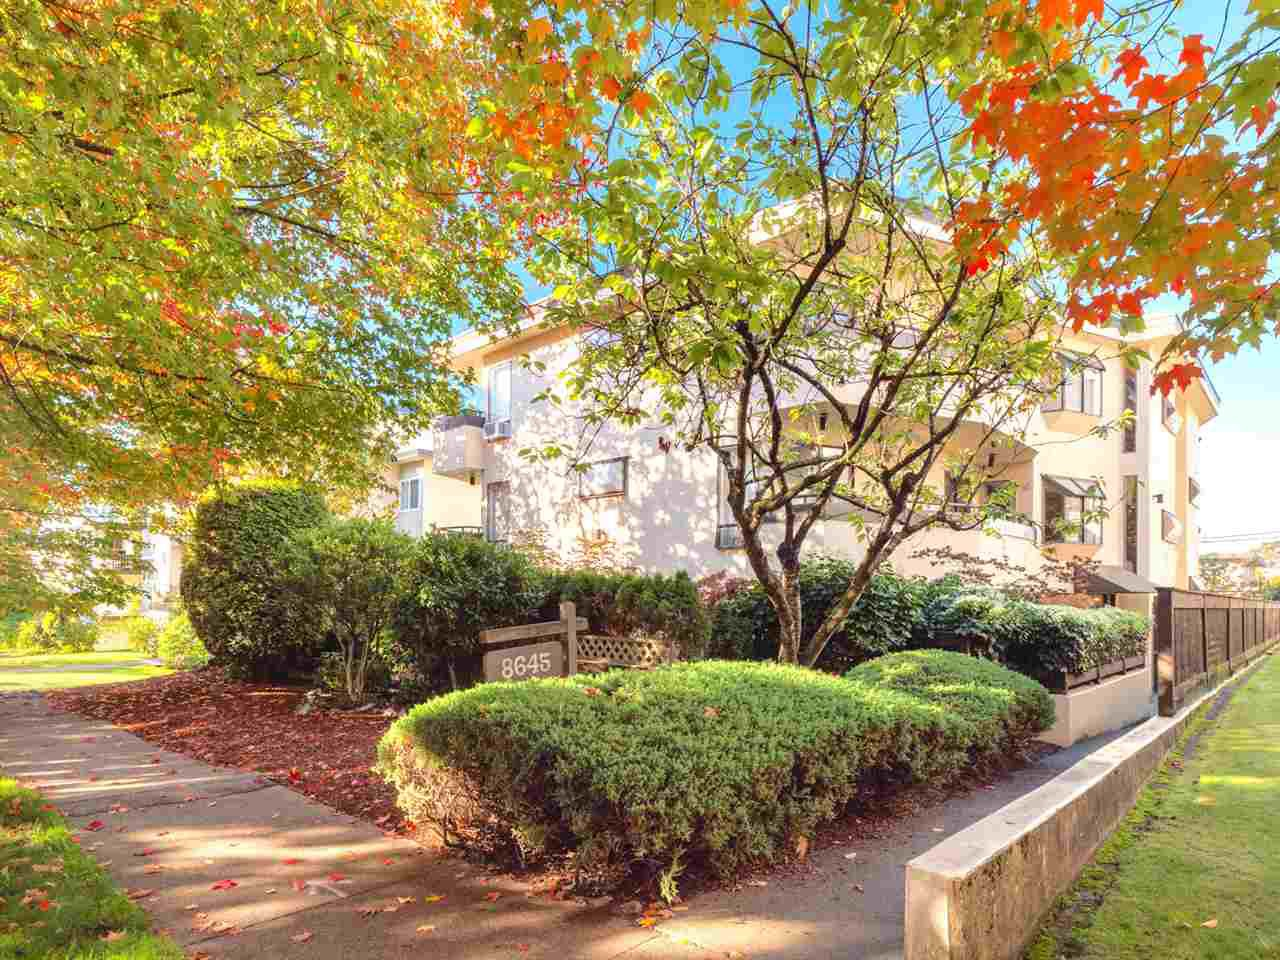 Photo 19: Photos: 101 8645 OSLER Street in Vancouver: Marpole Condo for sale (Vancouver West)  : MLS®# R2311470